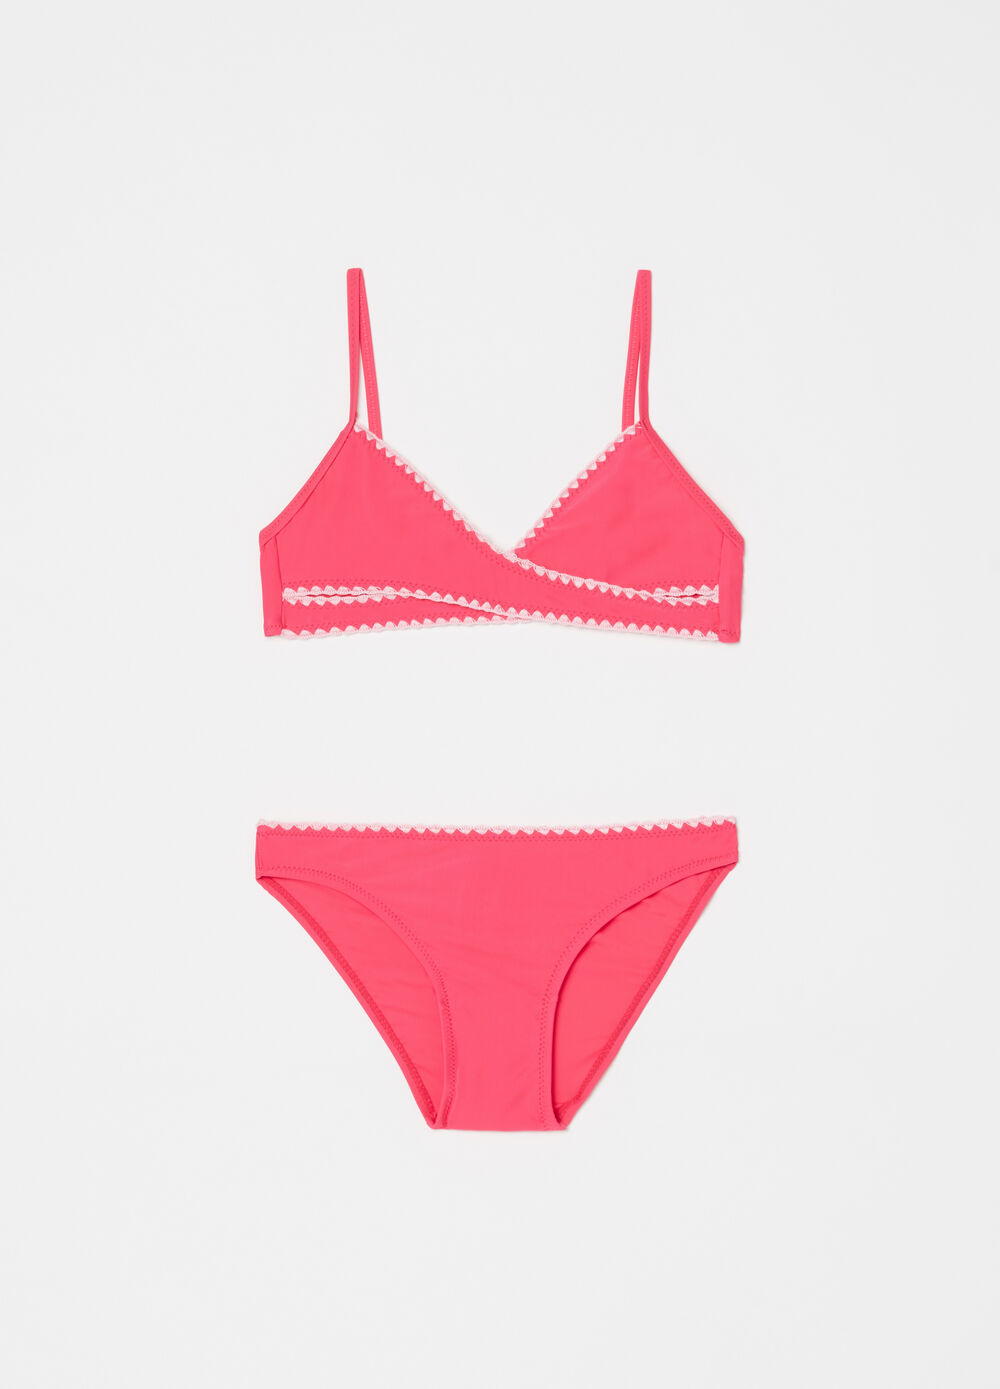 Stretch bikini with crossover top and briefs